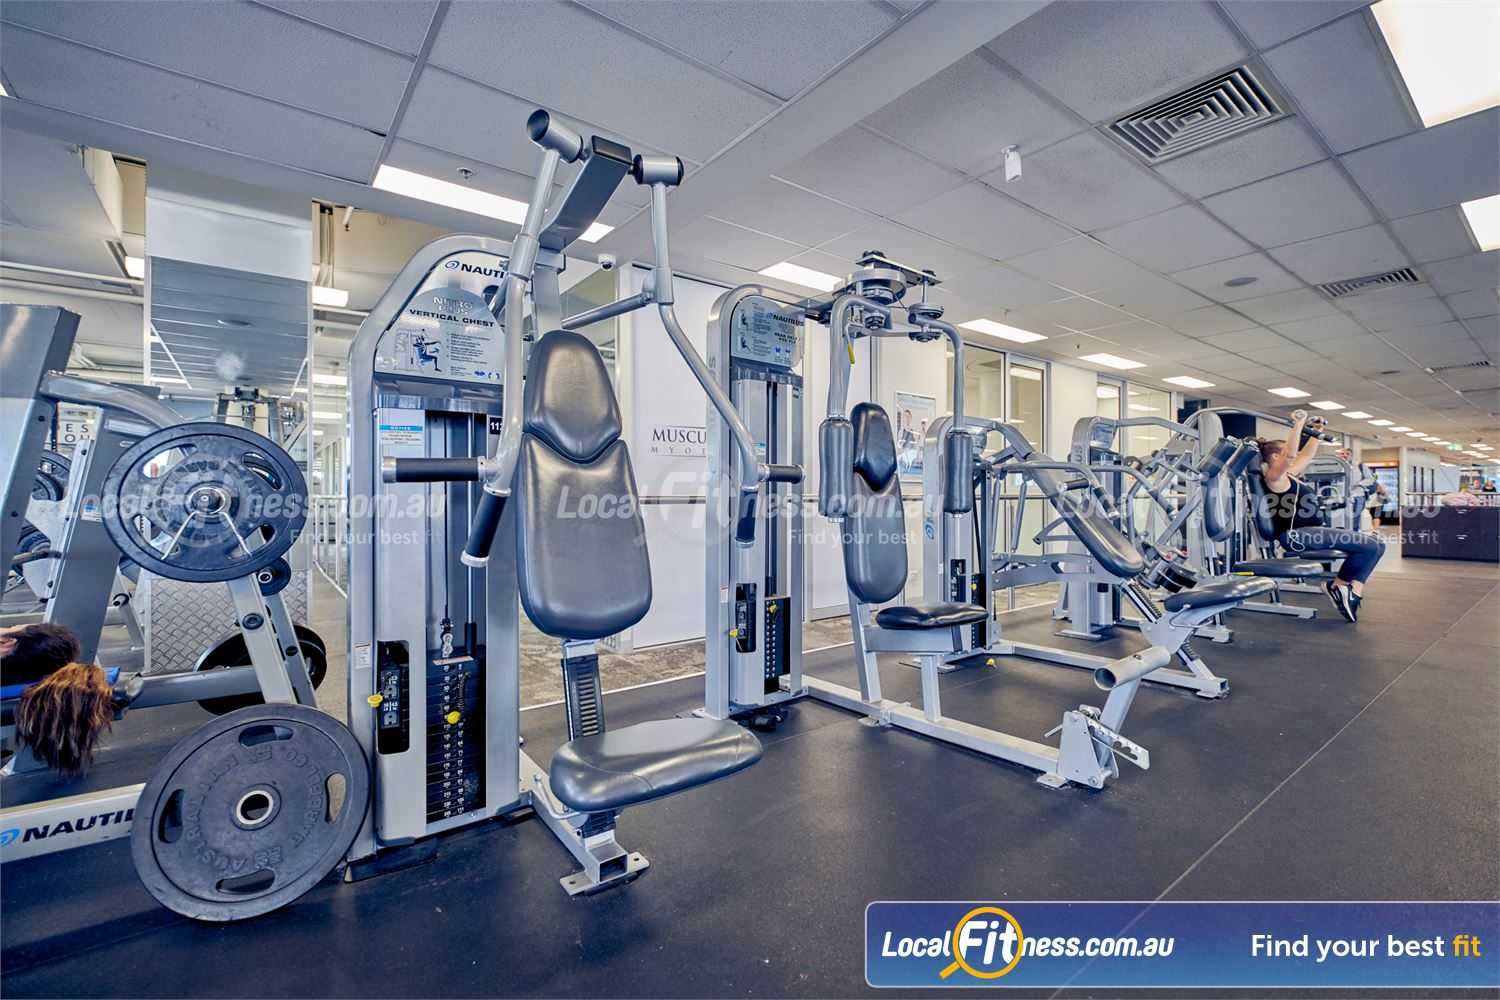 Goodlife Health Clubs Camberwell Our Camberwell gym includes state of the art pin-loading machine.